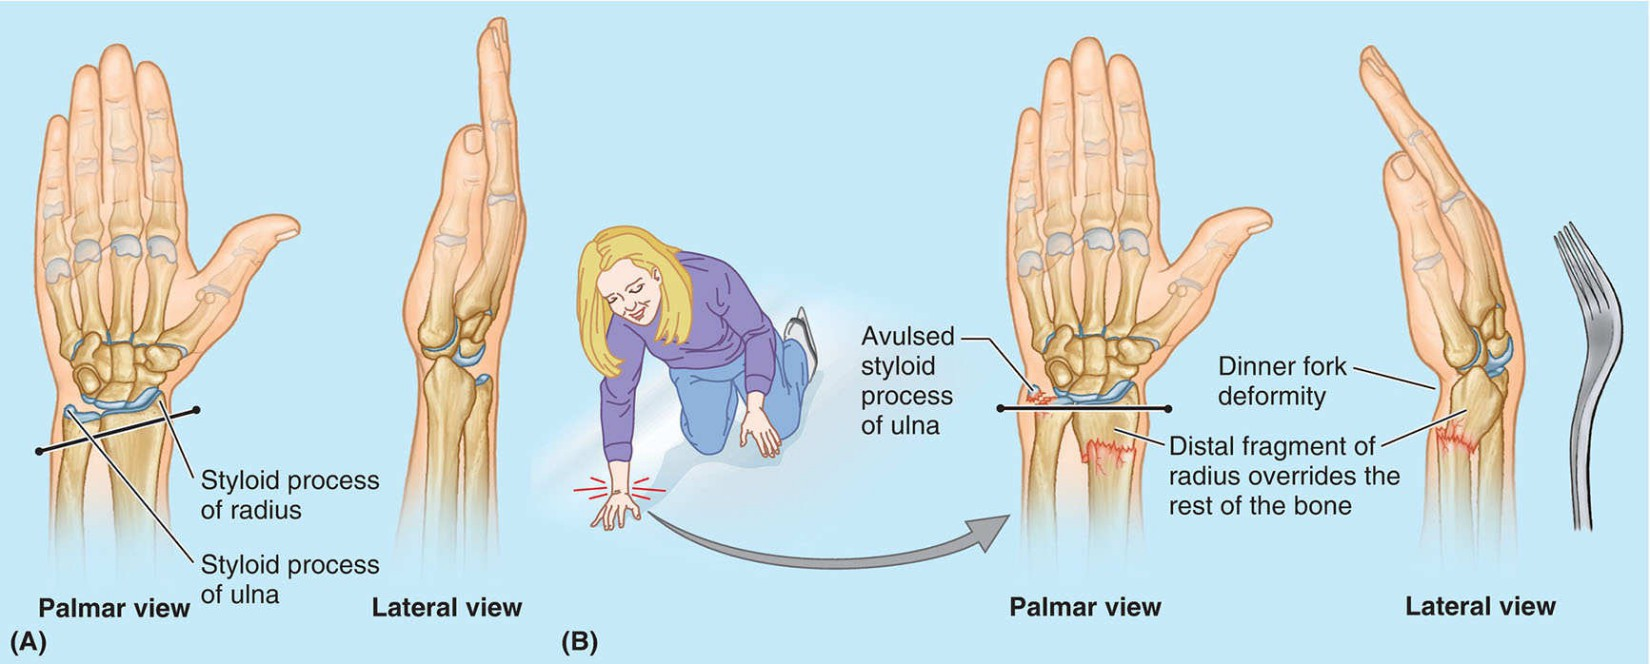 Distal Fracture Of Forearm Bones Anatomical Diagram